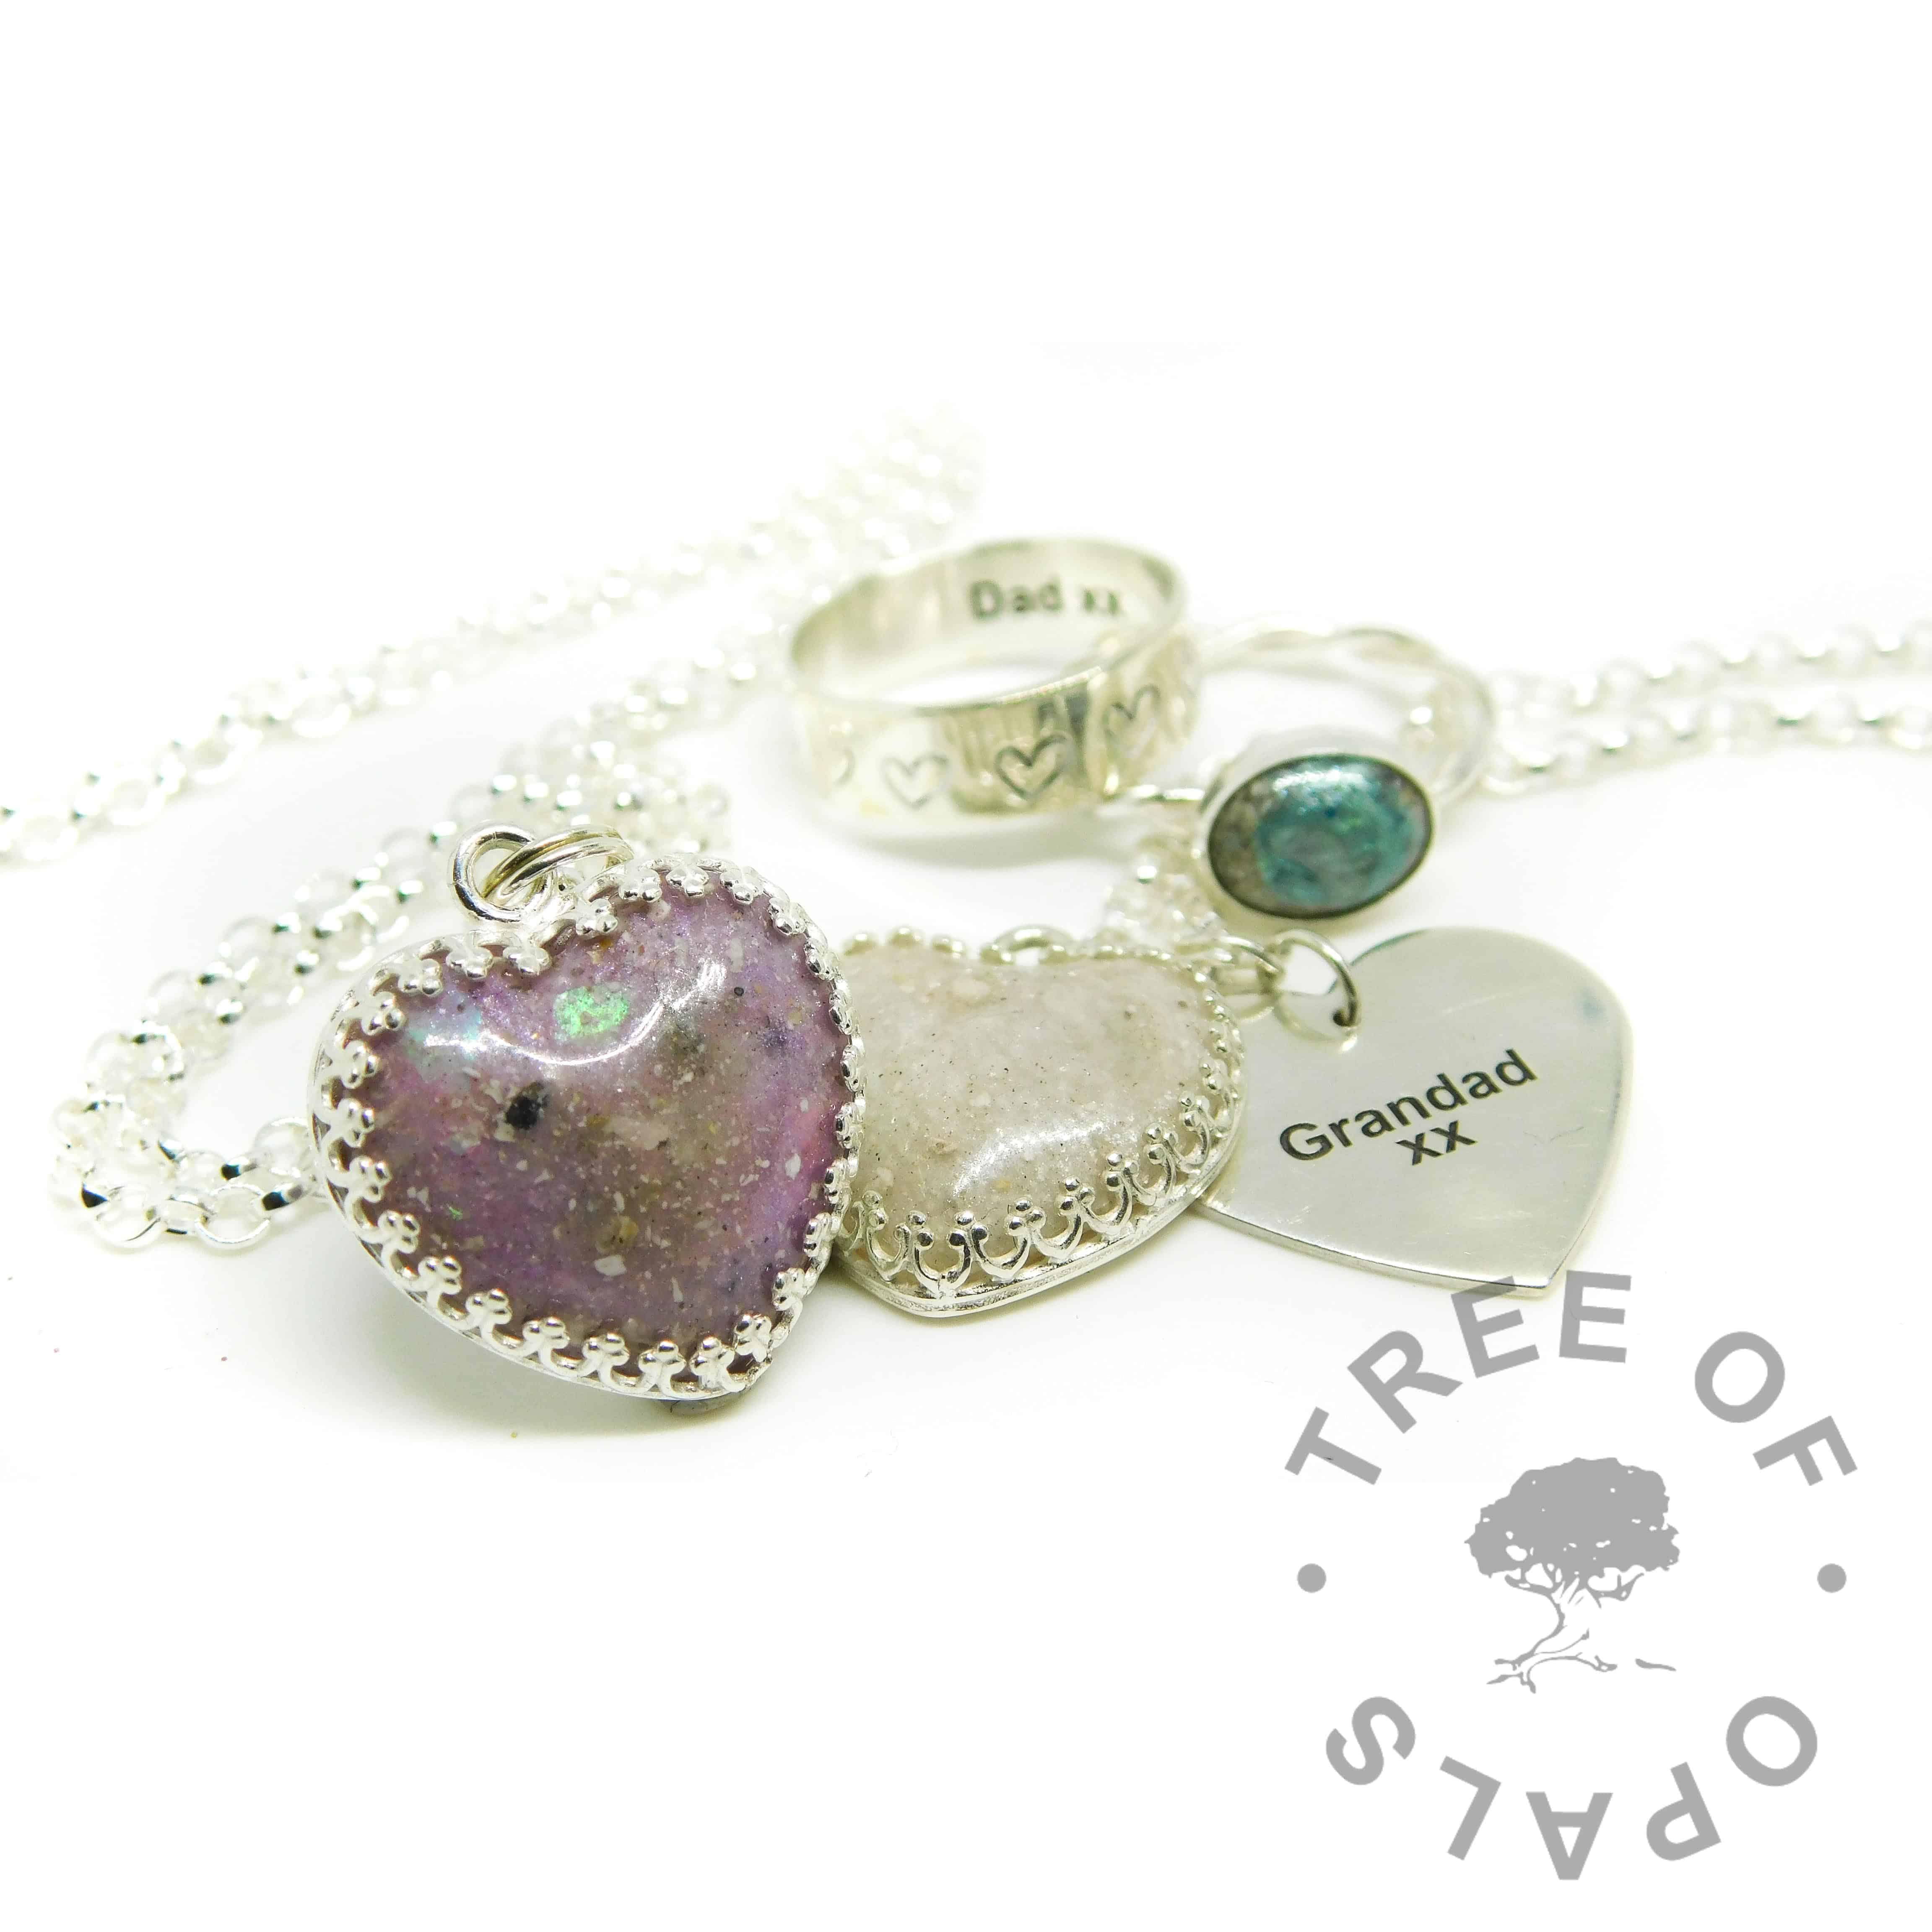 cremation ashes hearts and rings with engraving